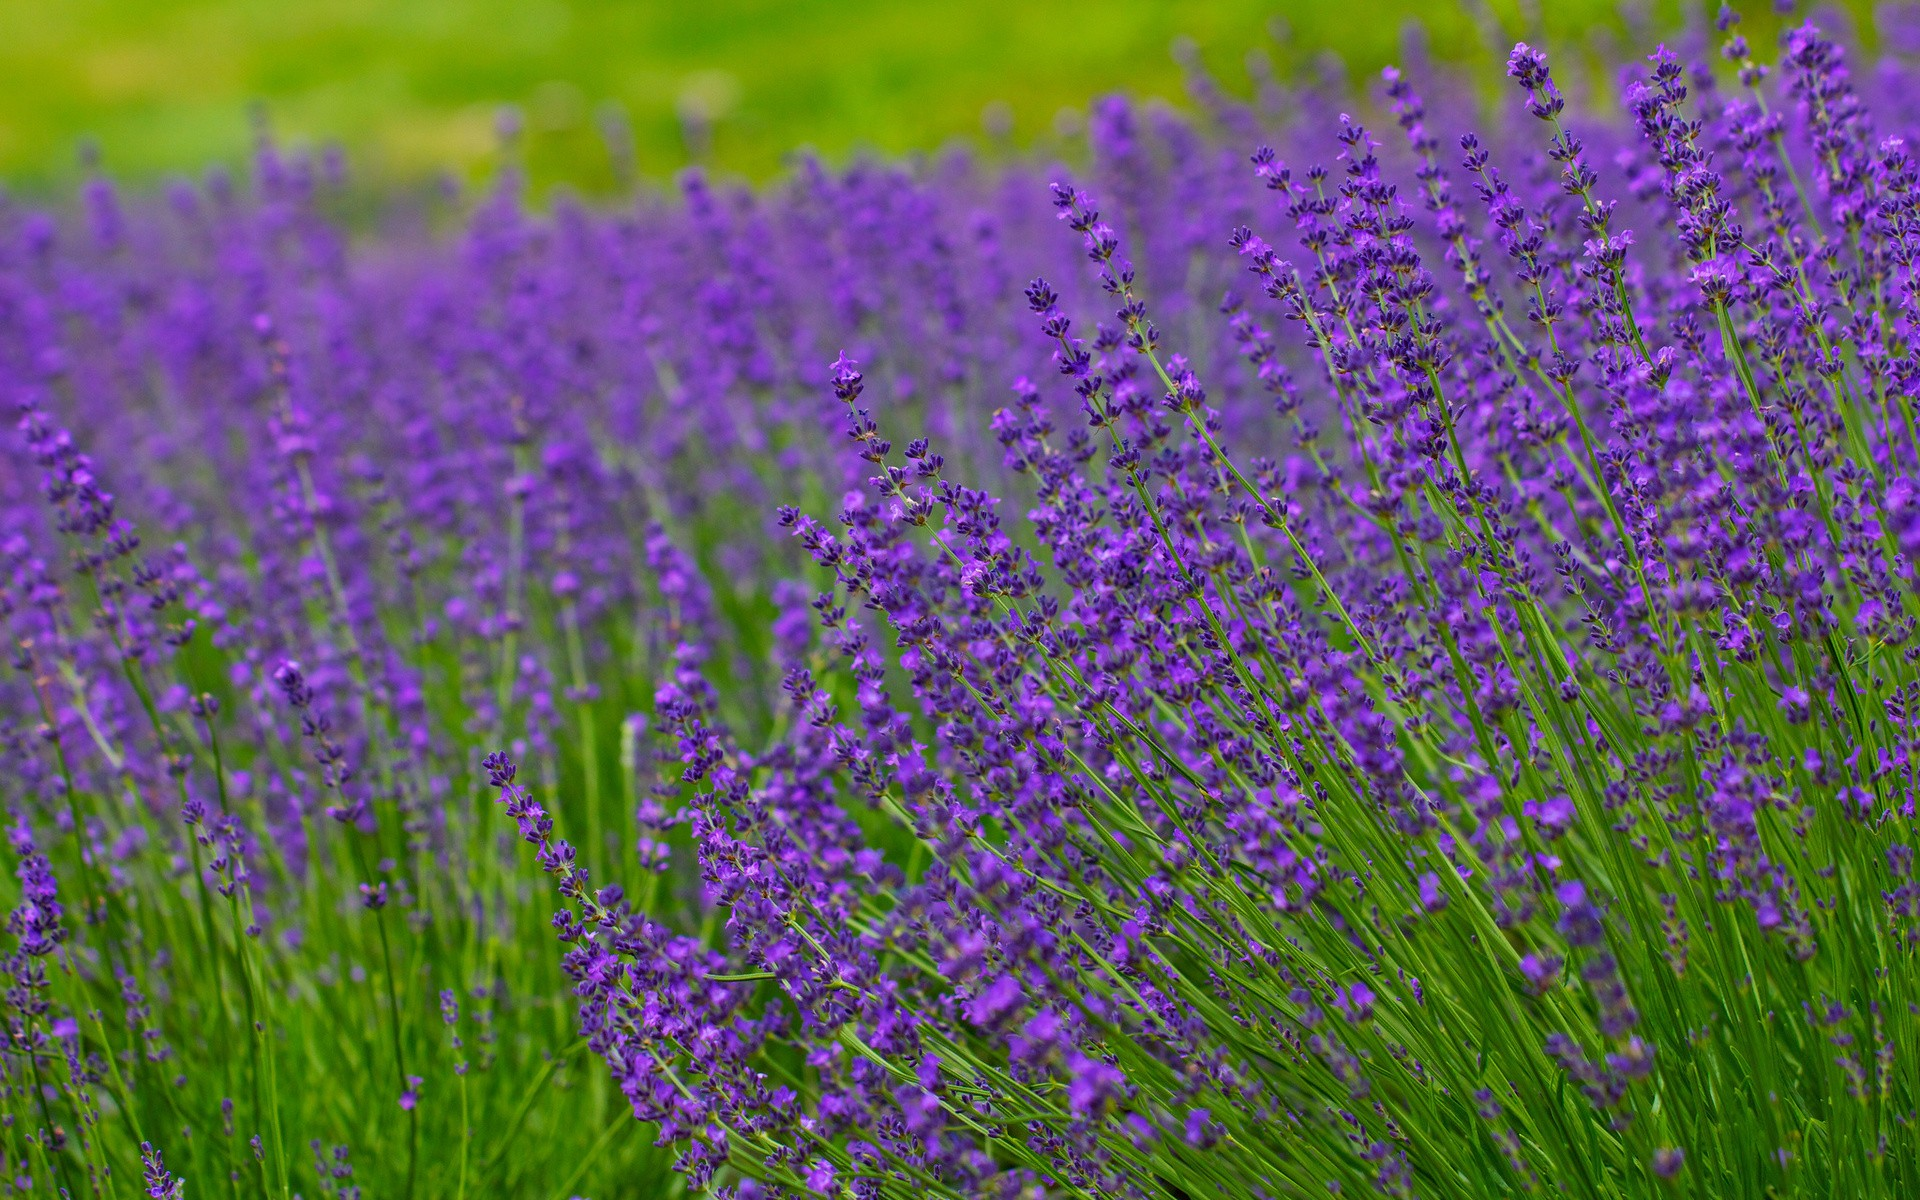 Lavender field hd wallpaper background   HD Wallpapers 1920x1200